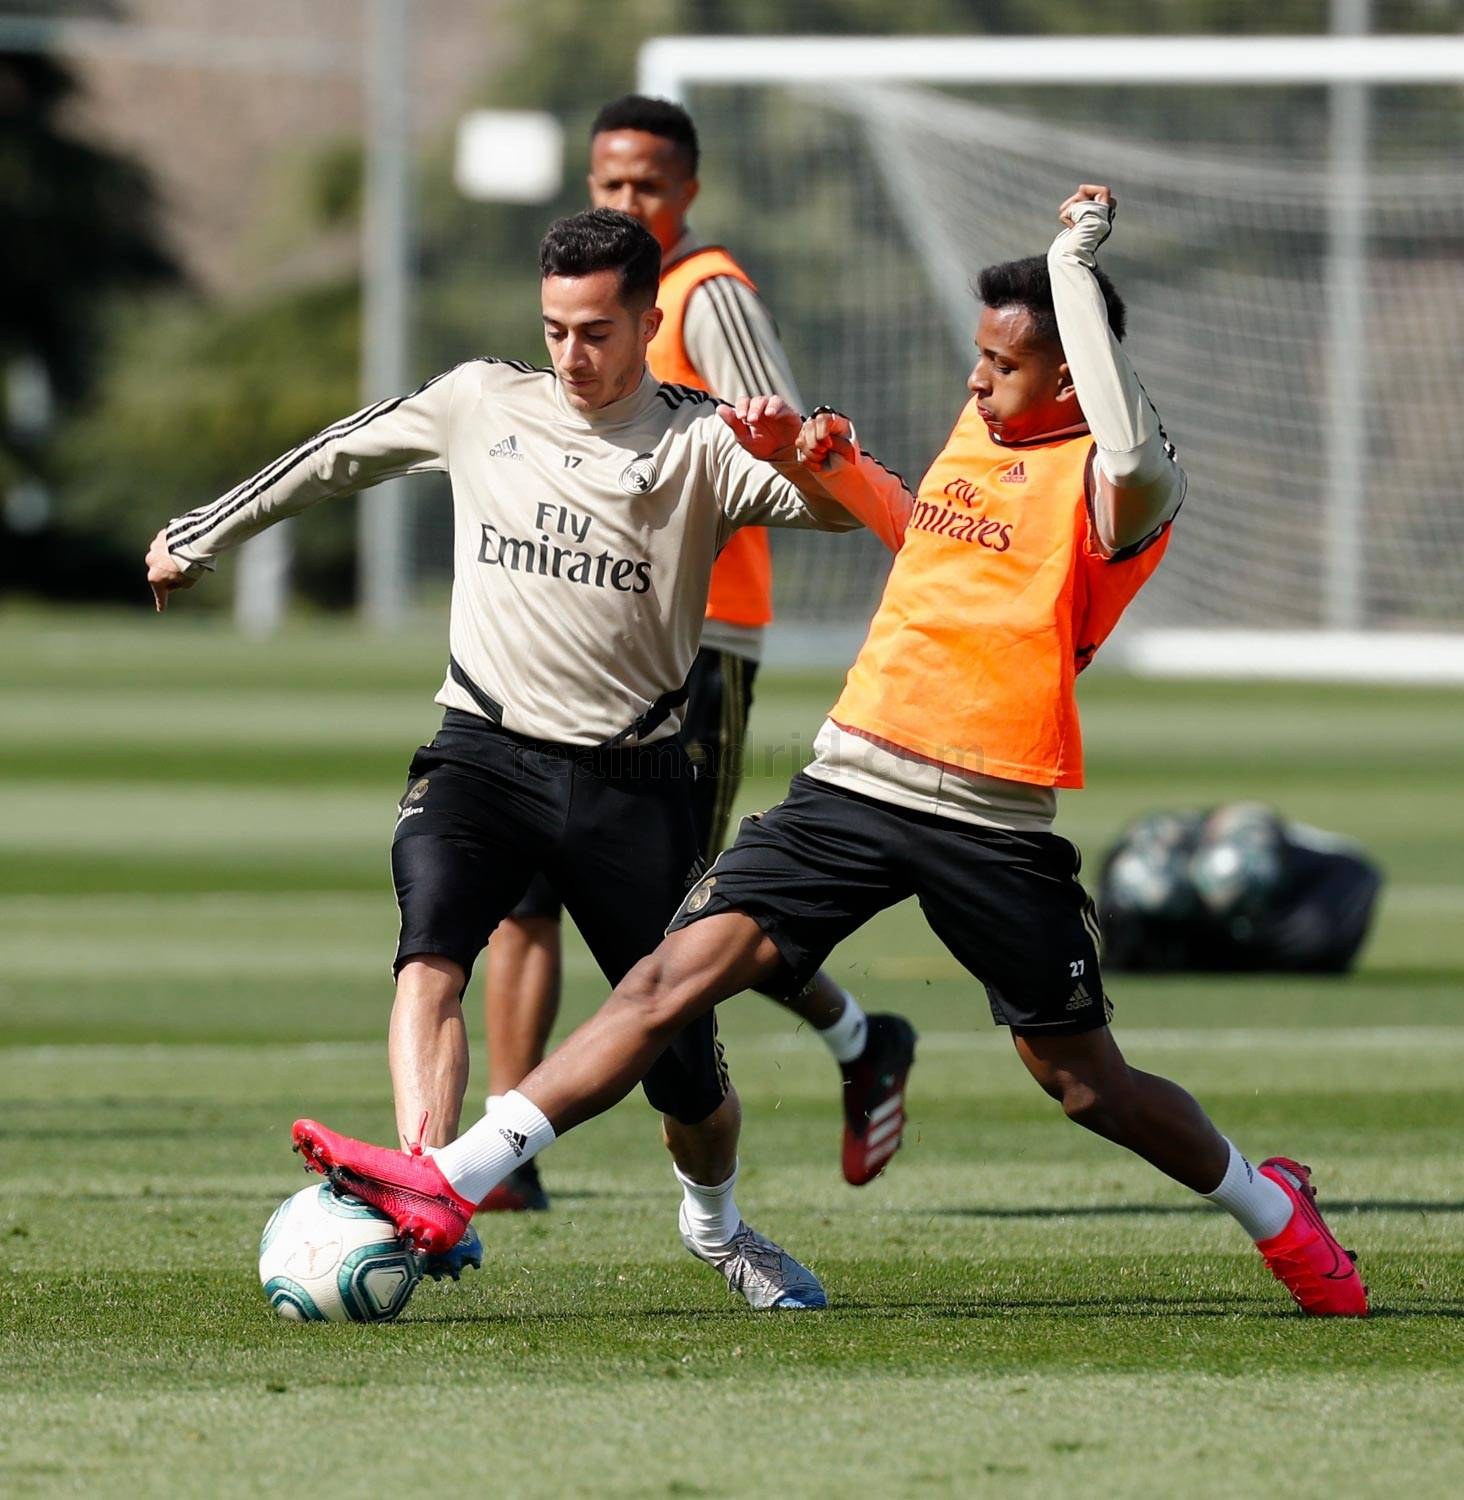 Real Madrid - Entrenamiento del Real Madrid  - 04-03-2020